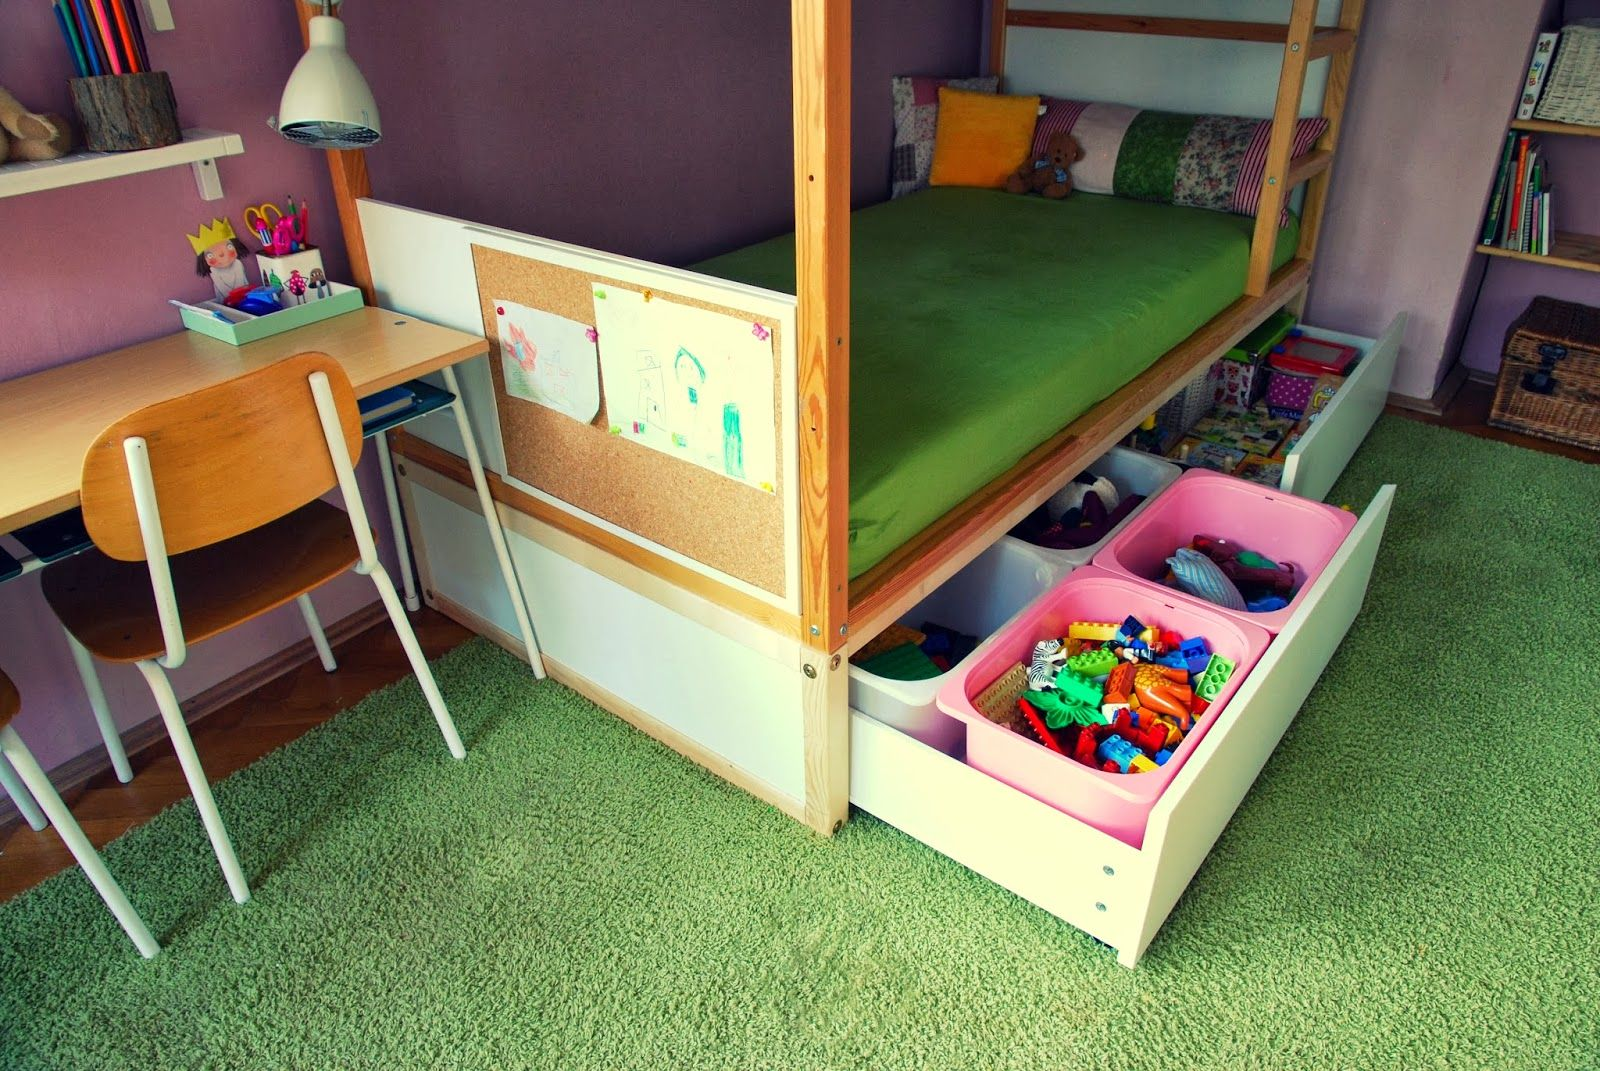 Ikea Kura Bed Hack Build A Sturdy Platform With Drawers